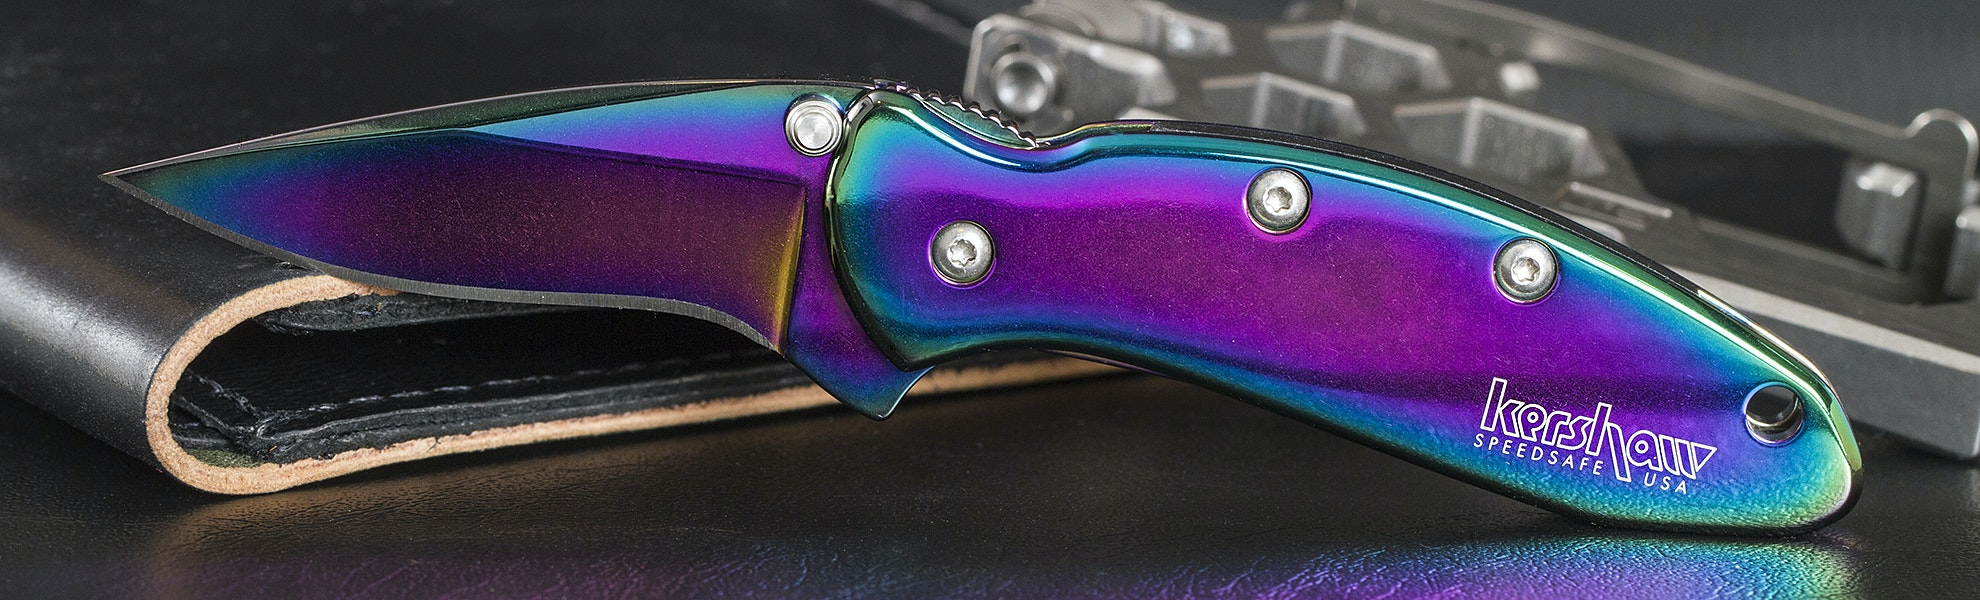 Kershaw Rainbow Chive Pocket Knife